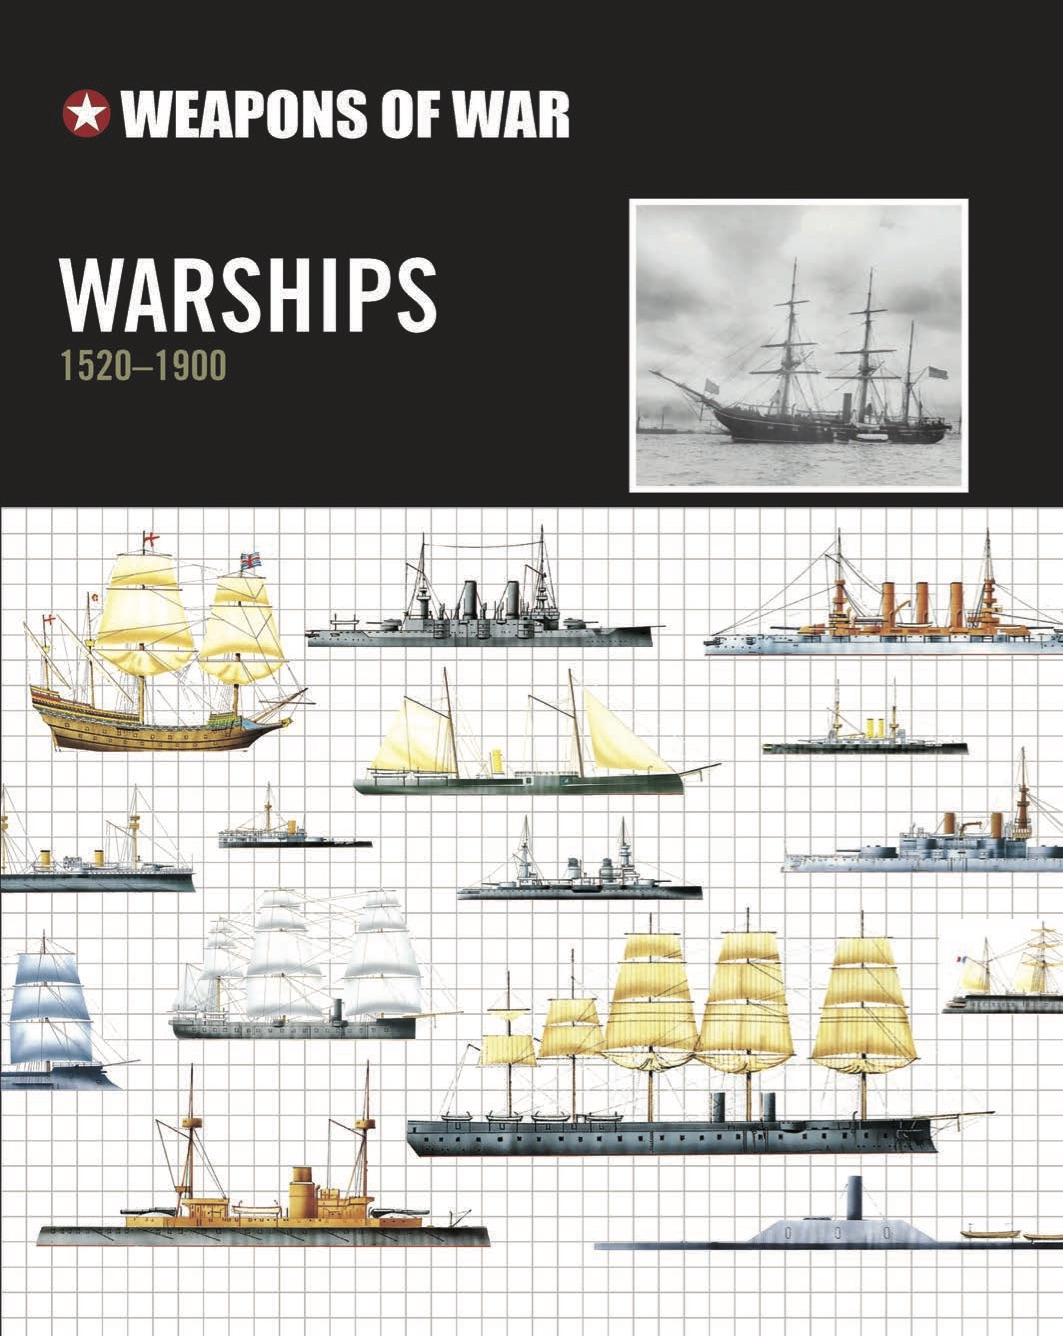 Warships 1520-1900 – Weapons of War